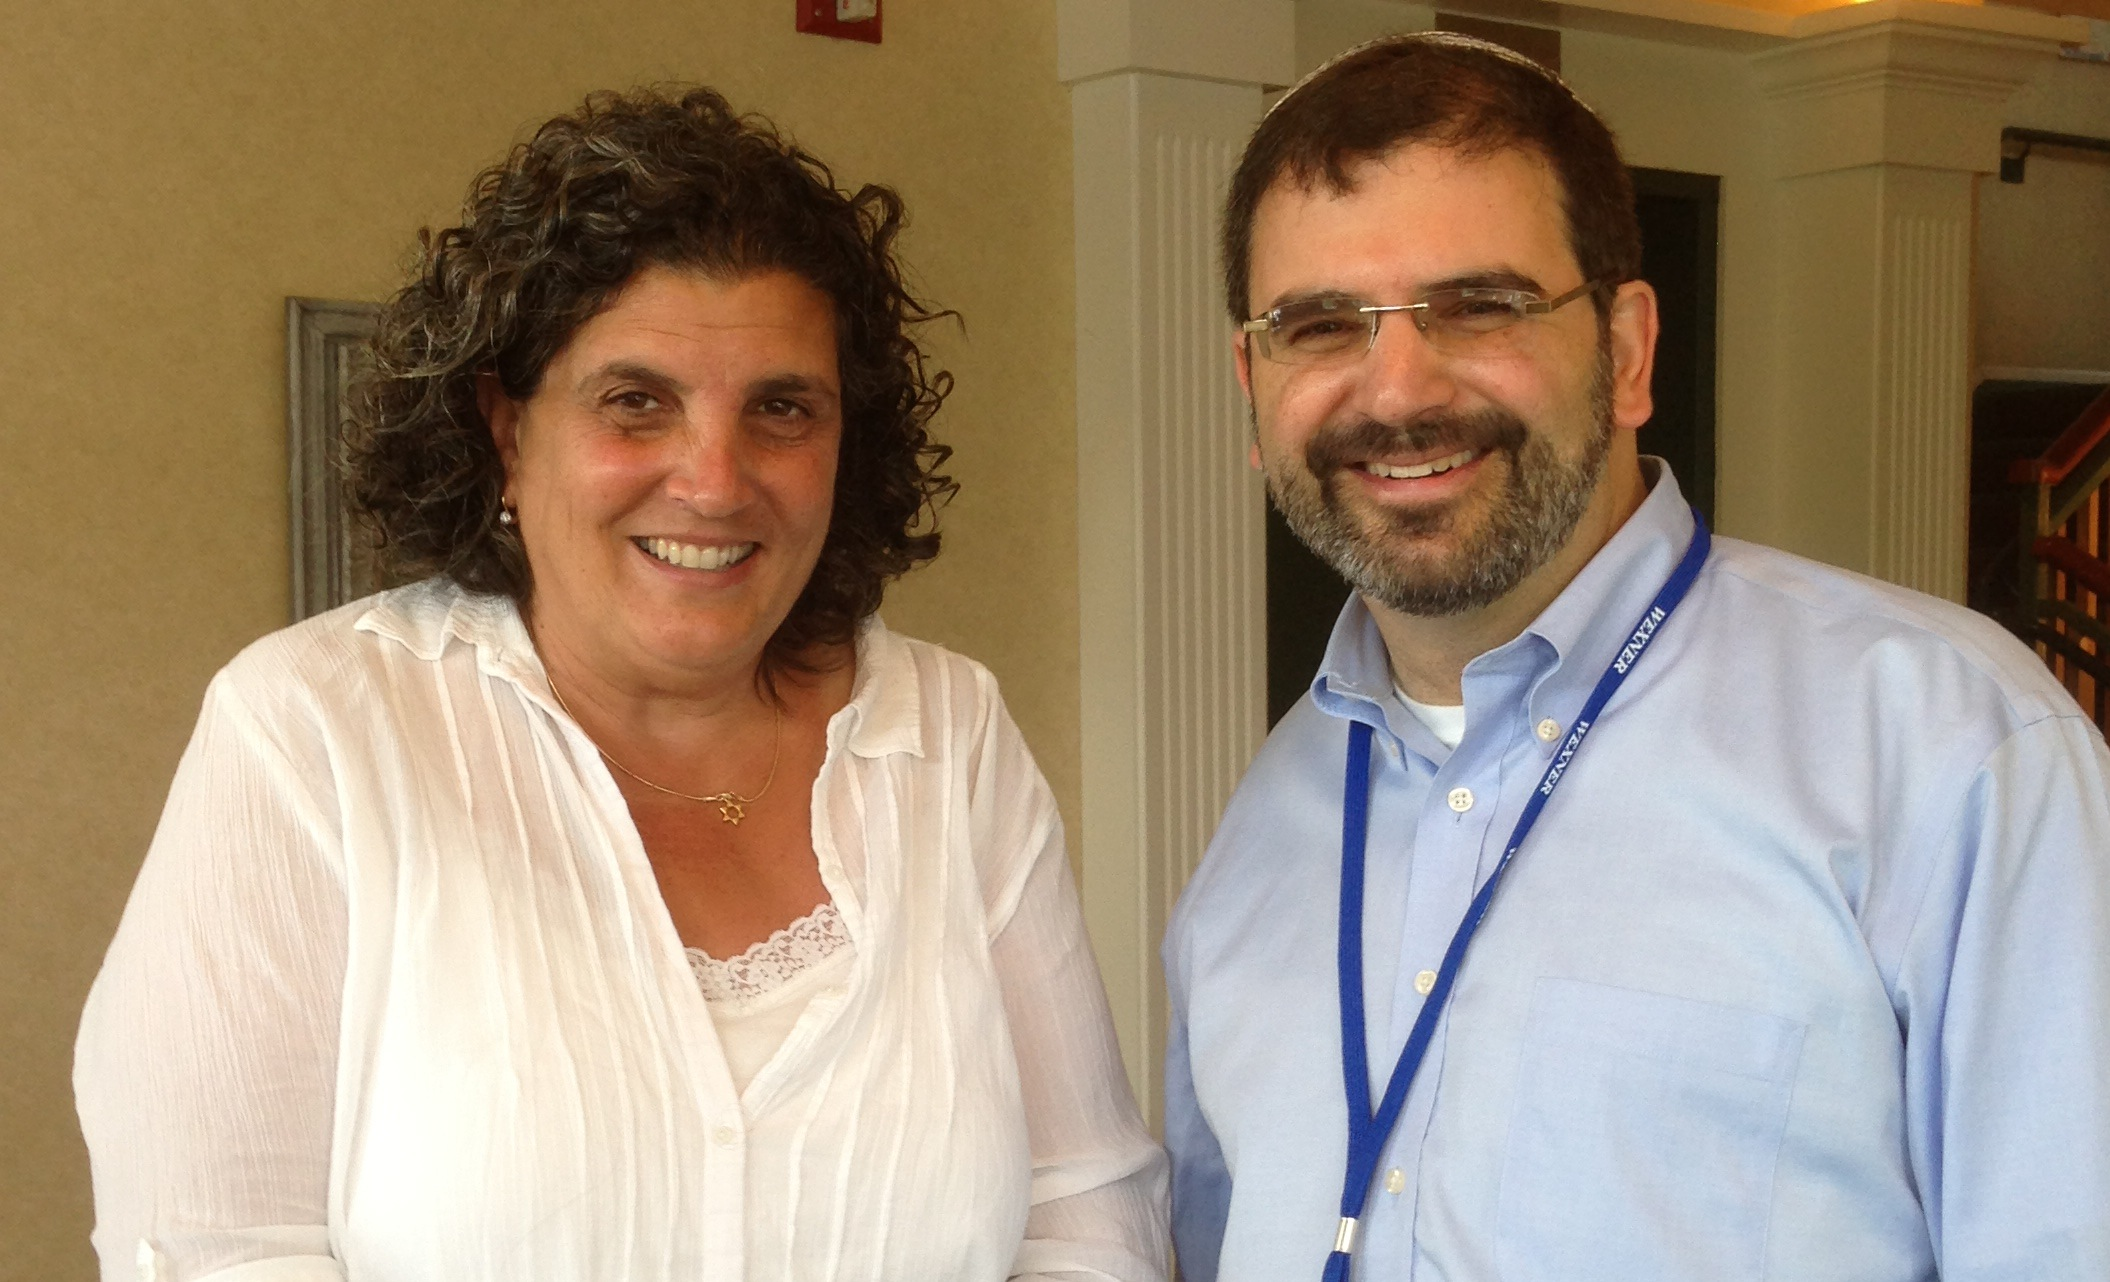 Rabbi Asher Lopatin will mark his installation as president of Yeshivat Chovevei Torah with a round-table discussion with Rabbi B. Elka Abrahamson, left, and other non-Orthodox leaders.